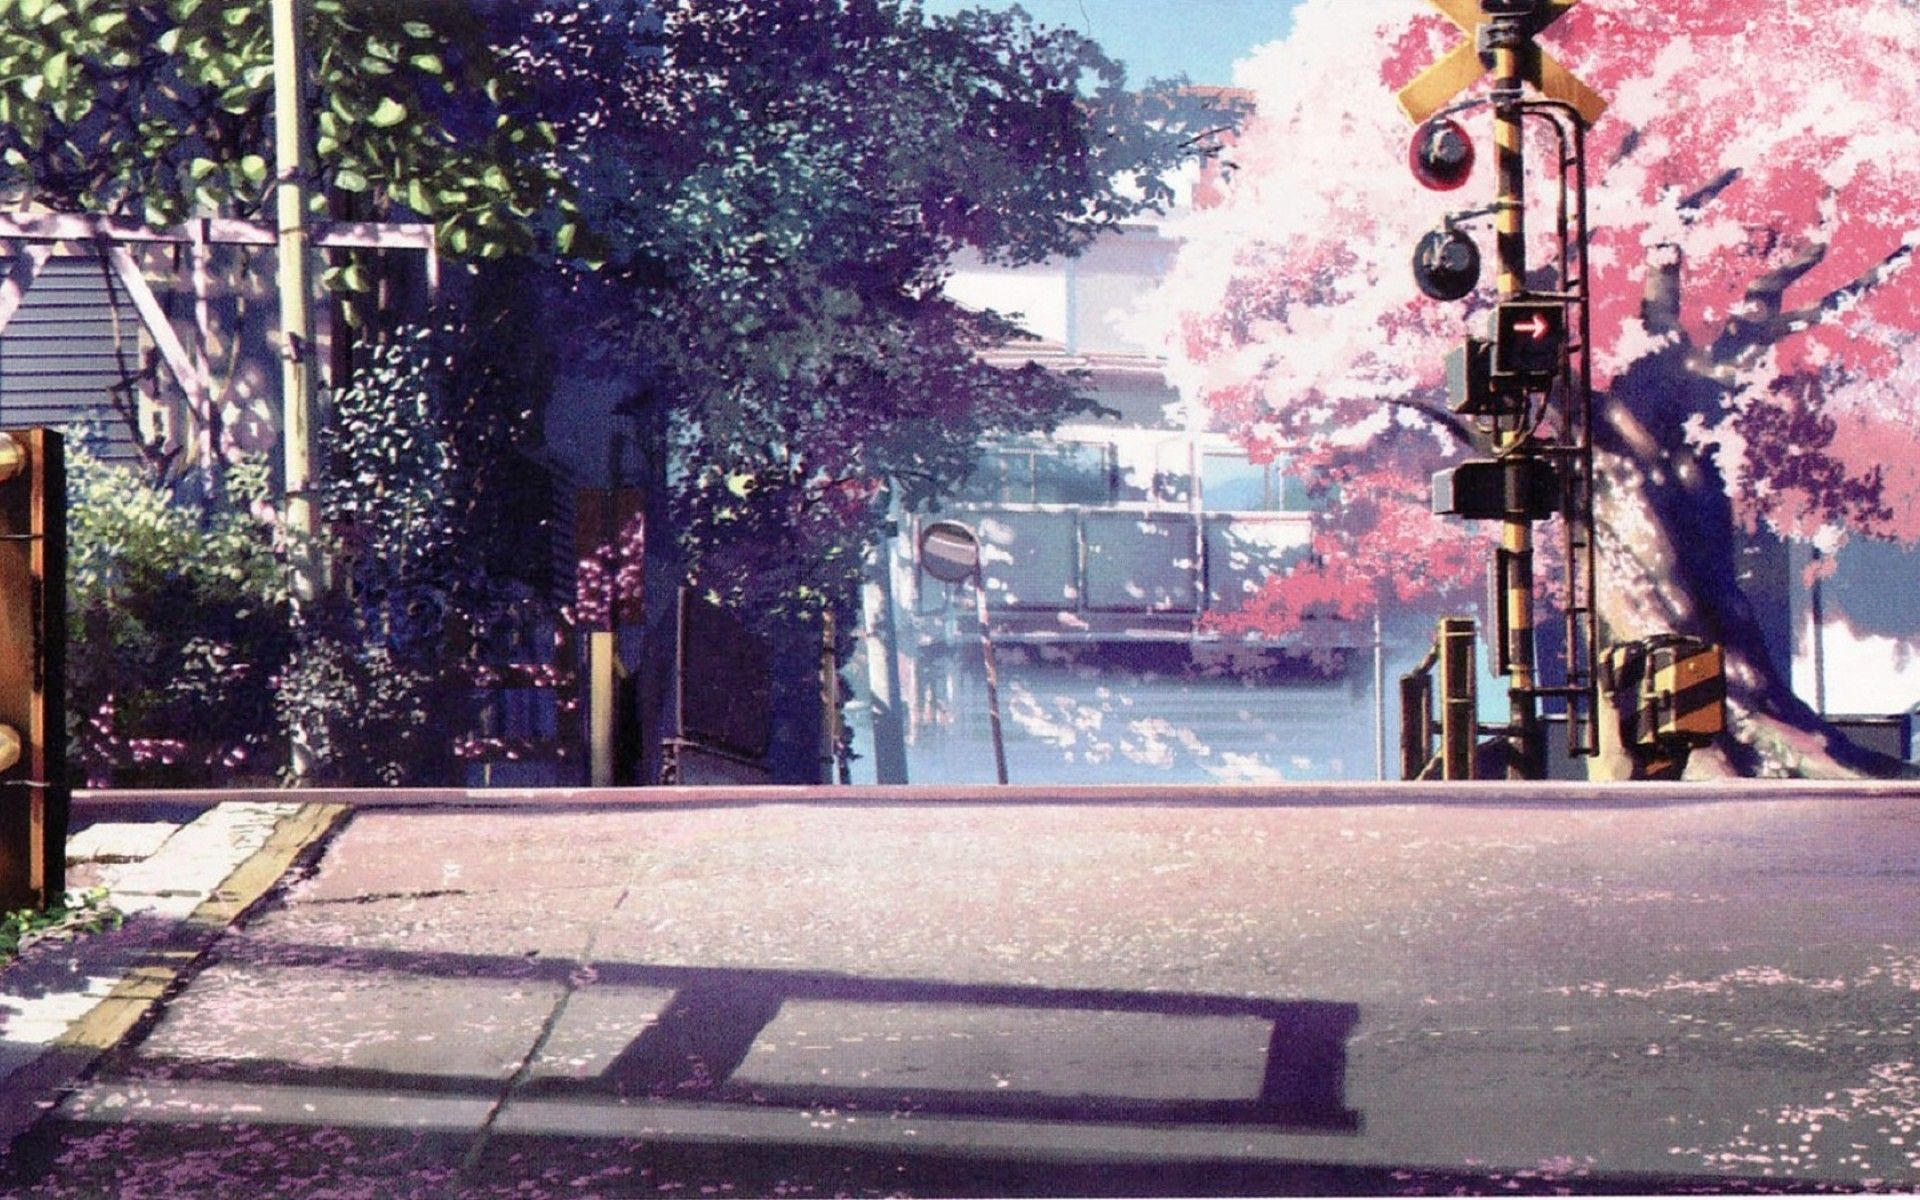 Cherry Blossoms Anime Scenery Wallpapers Top Free Cherry Blossoms Anime Scenery Backgrounds Wallpaperaccess